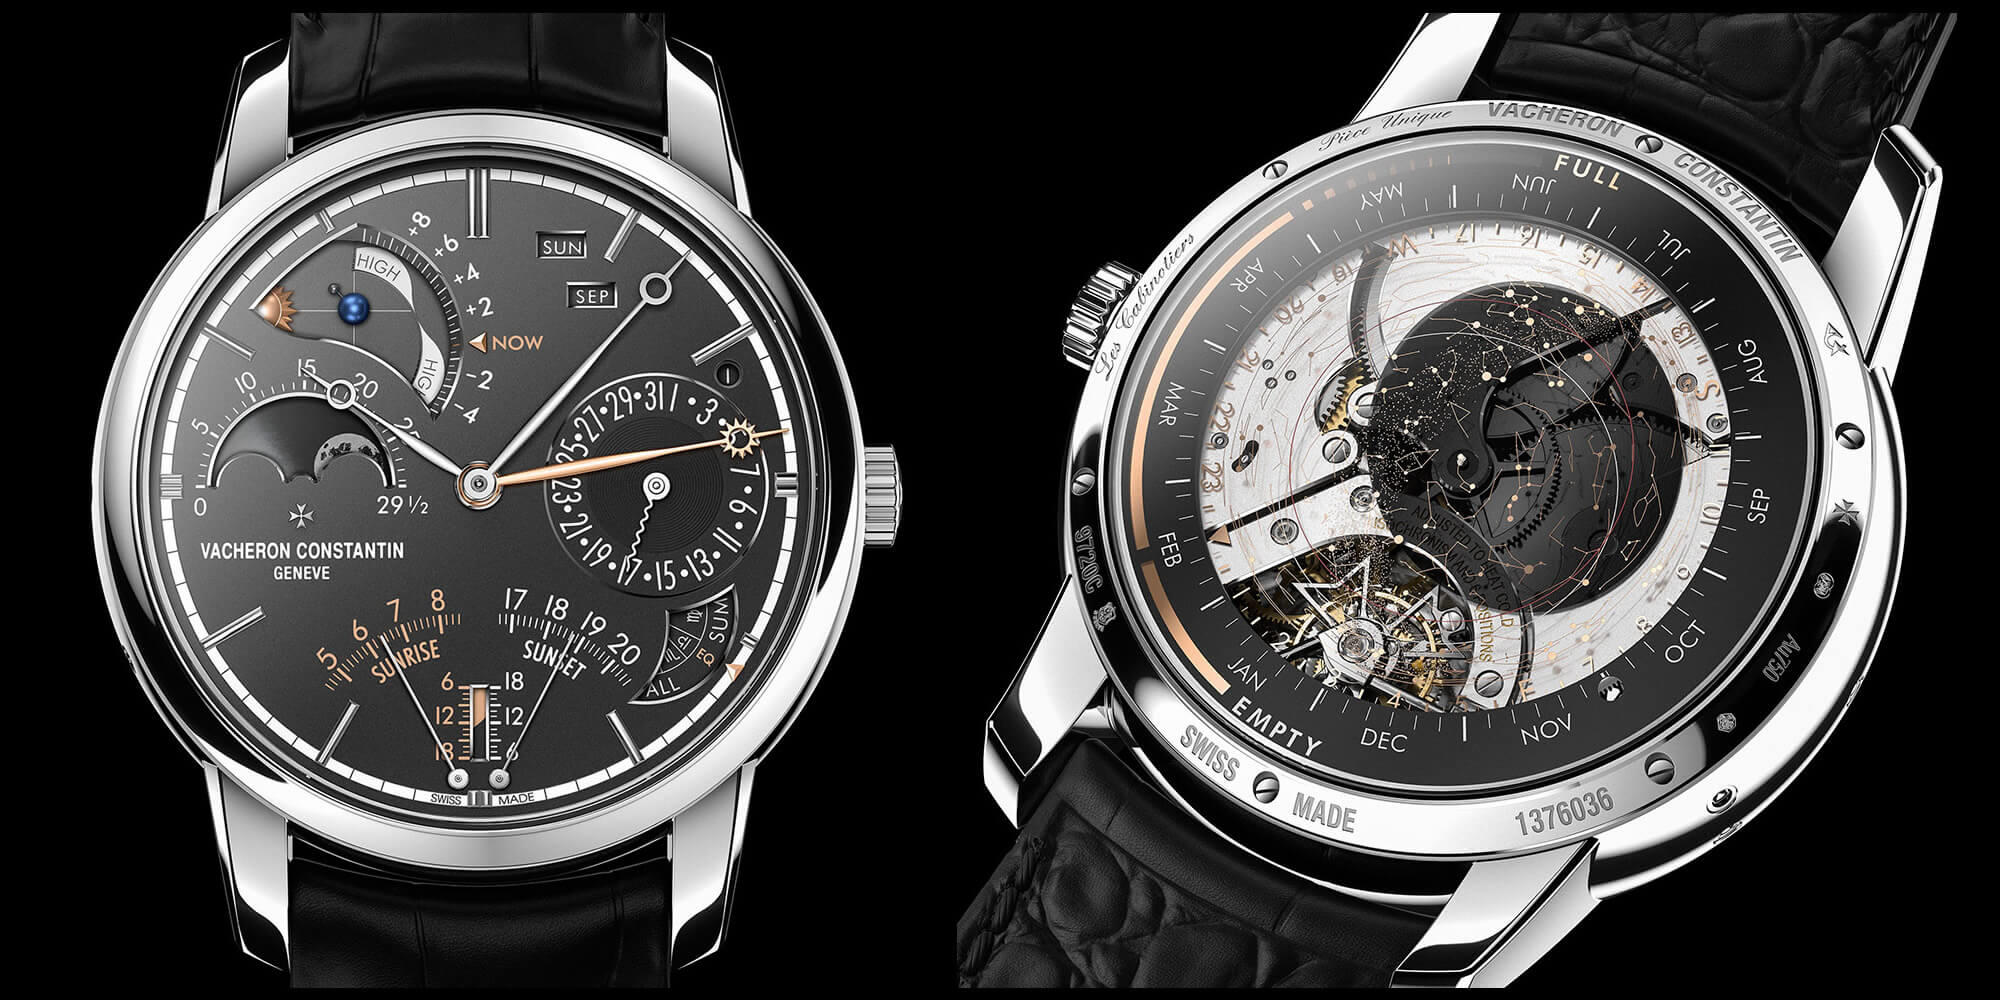 Les Cabinotiers Celestia Astronomical Grand Complication 3600